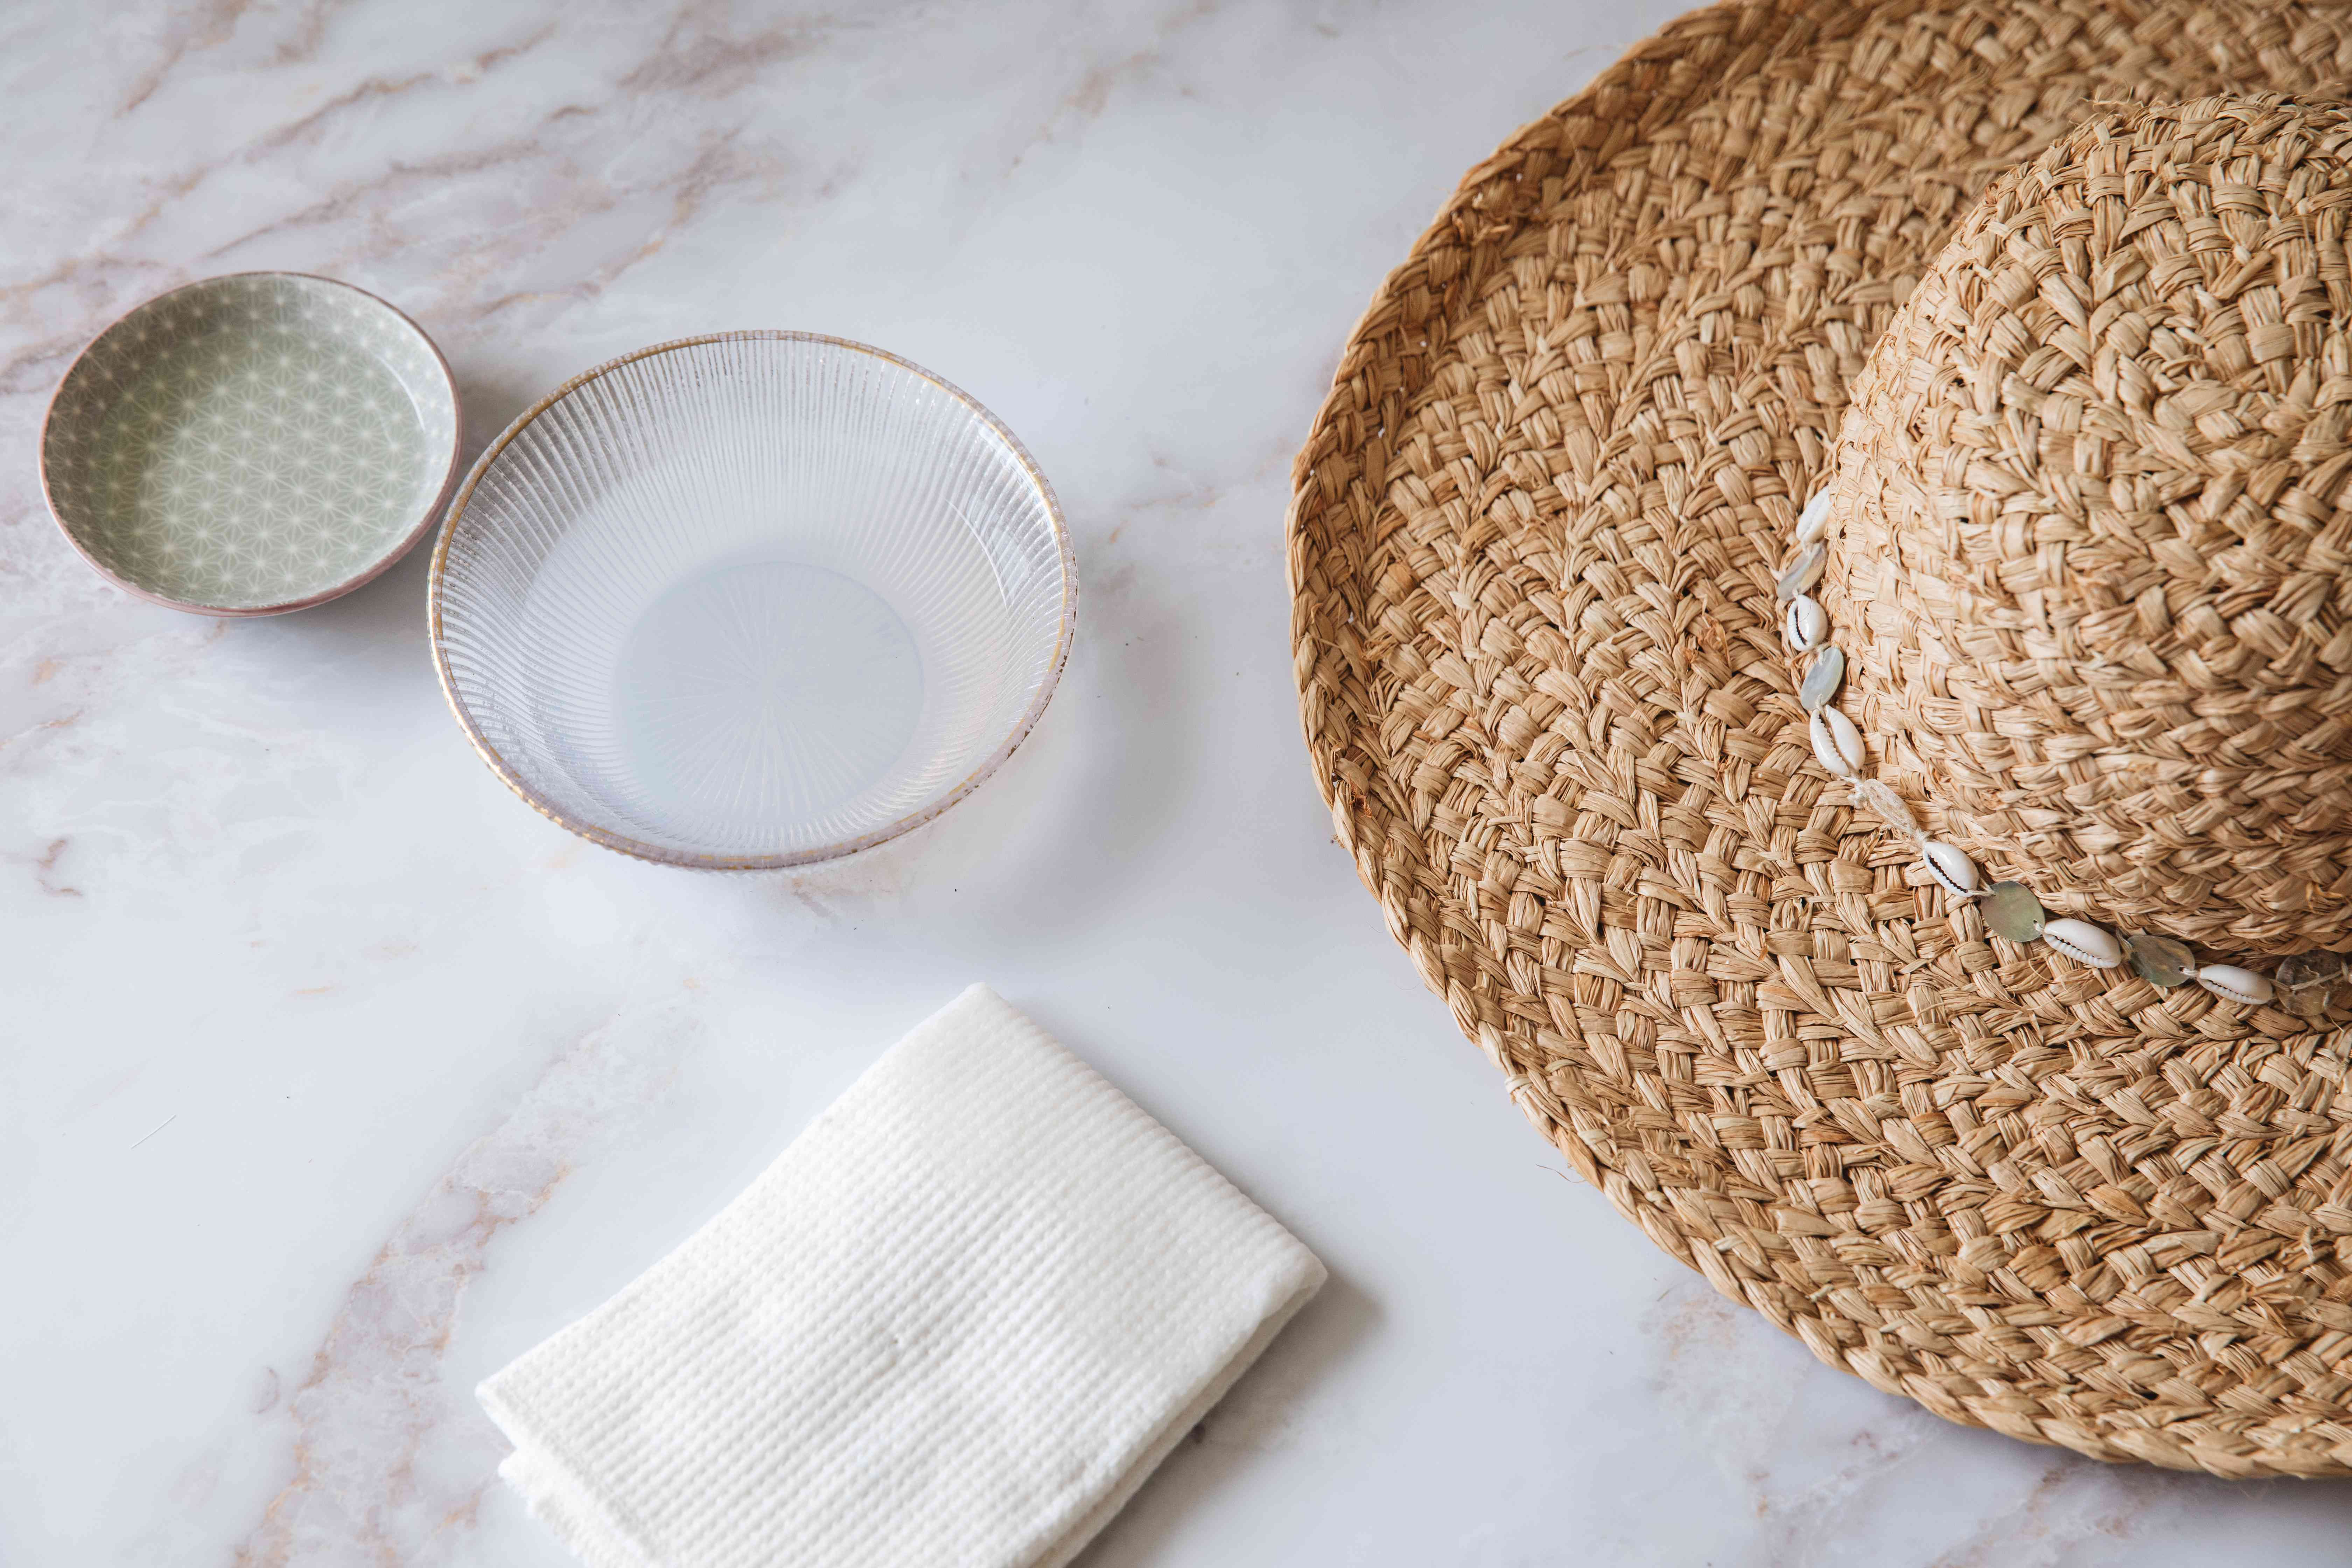 A straw hat with a white cloth and bowls of liquid